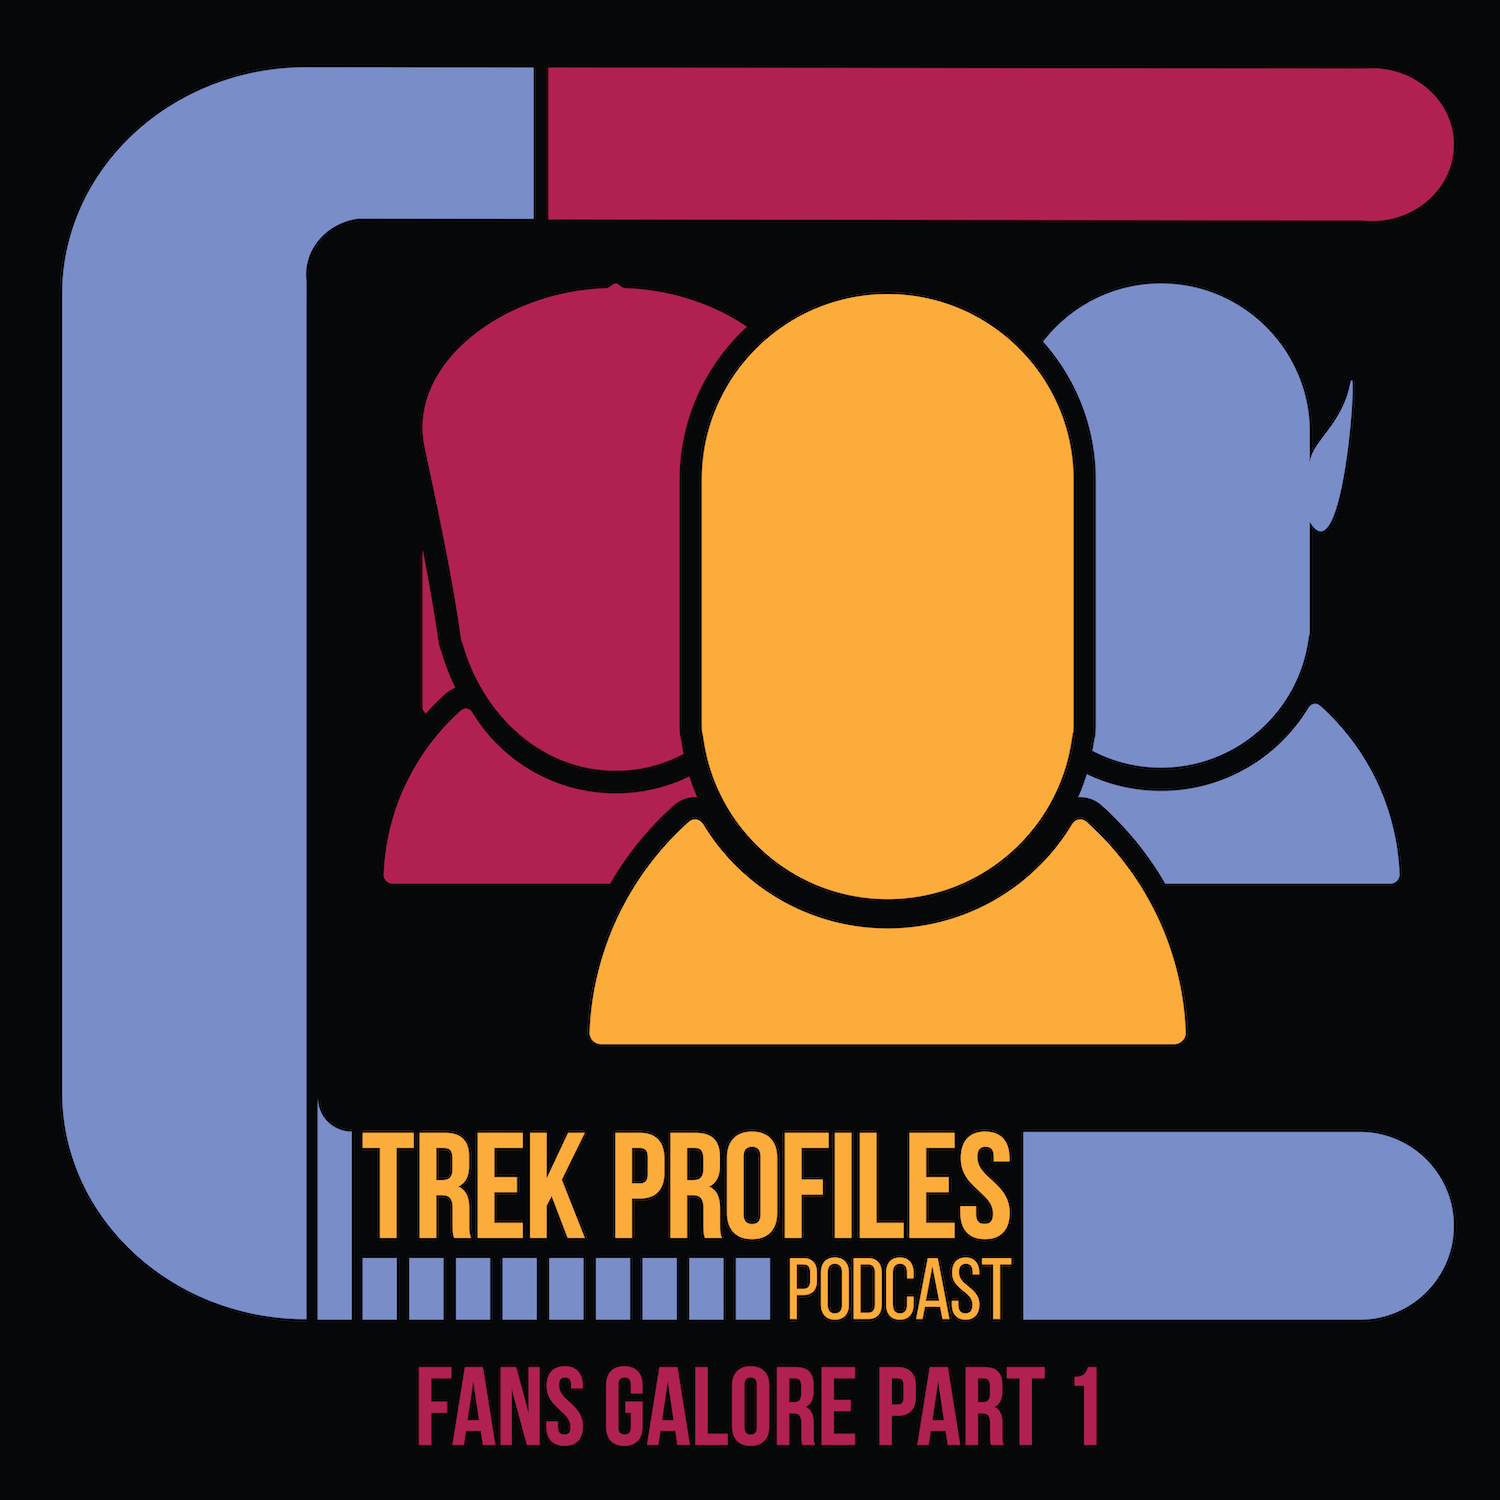 TrekProfiles #13: Fans Galore Part 1